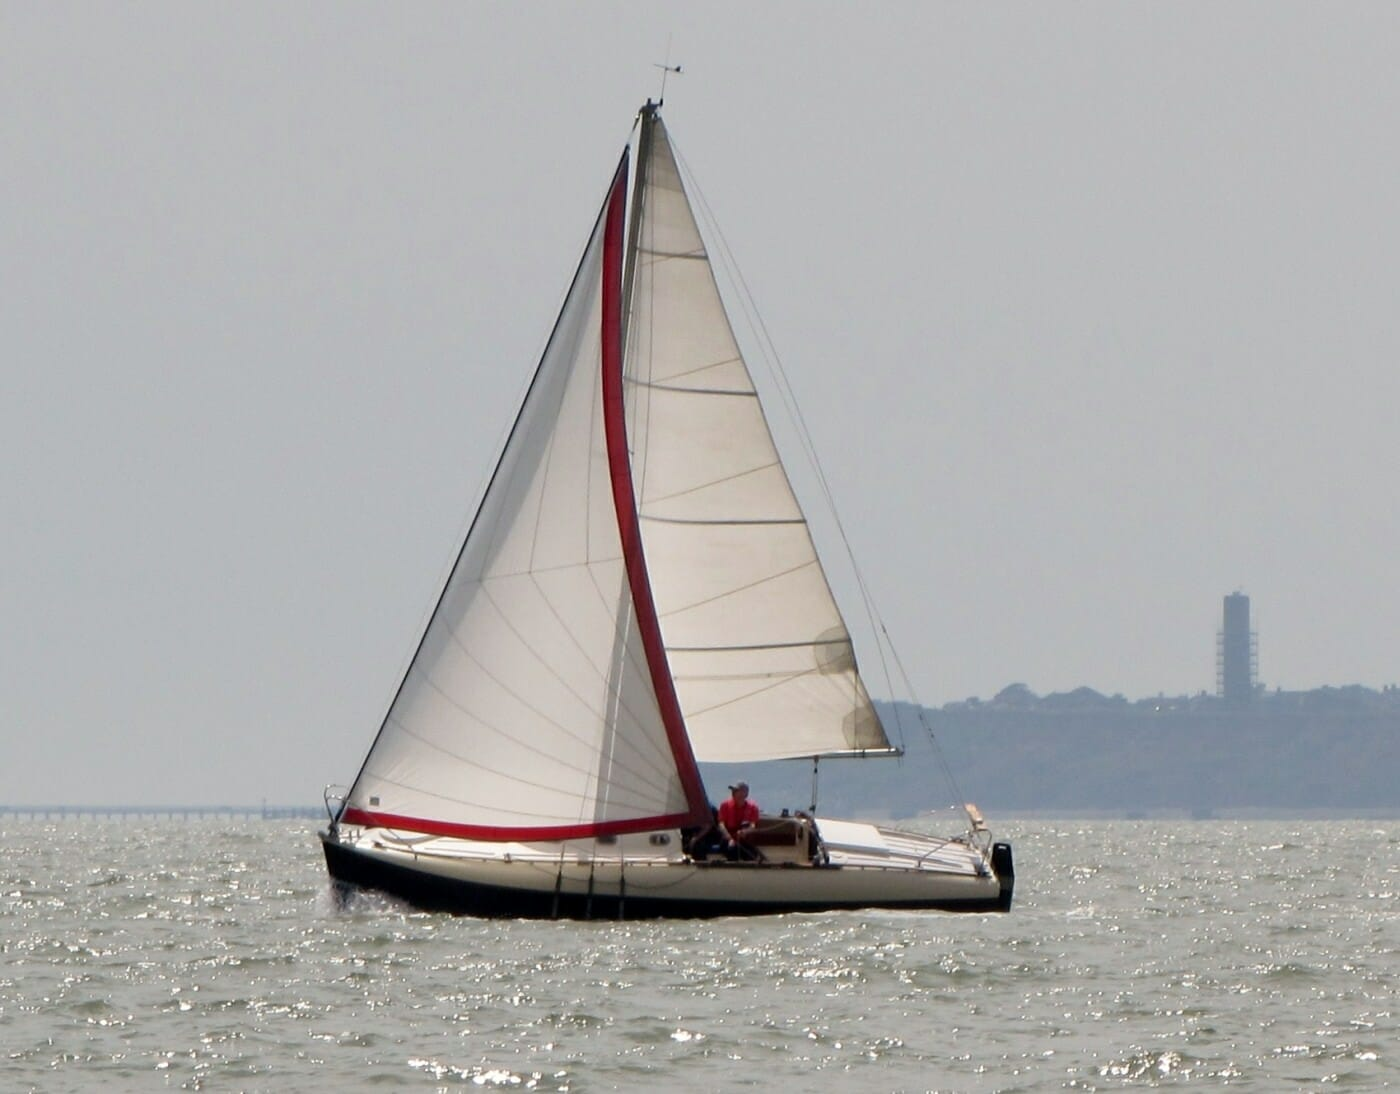 2015 A89 Sailing on the R.Orwell